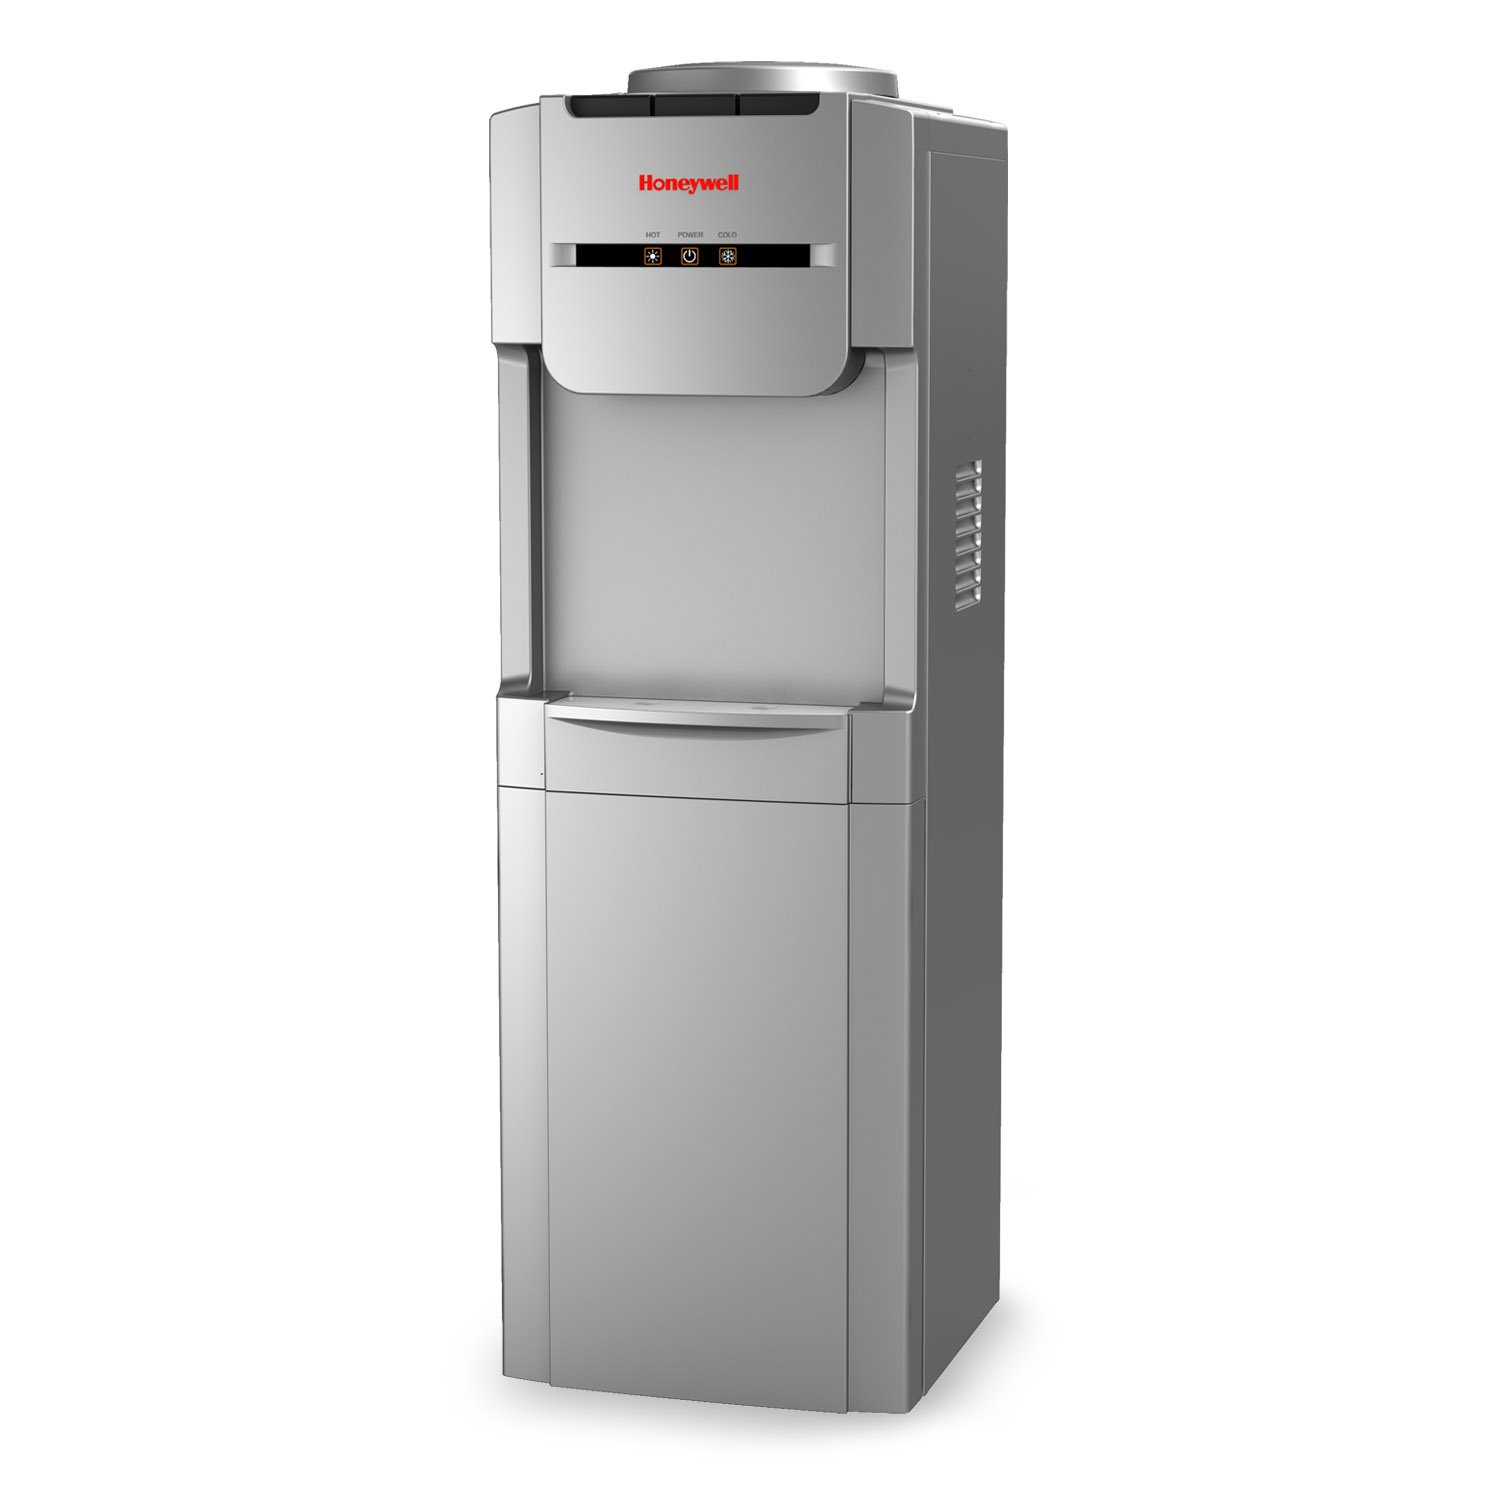 Honeywell Antibacterial Chemical-Free Technology, Hot and Cold Water Dispenser, Stainless Steel Tank, Adjustable Thermostat, Silver